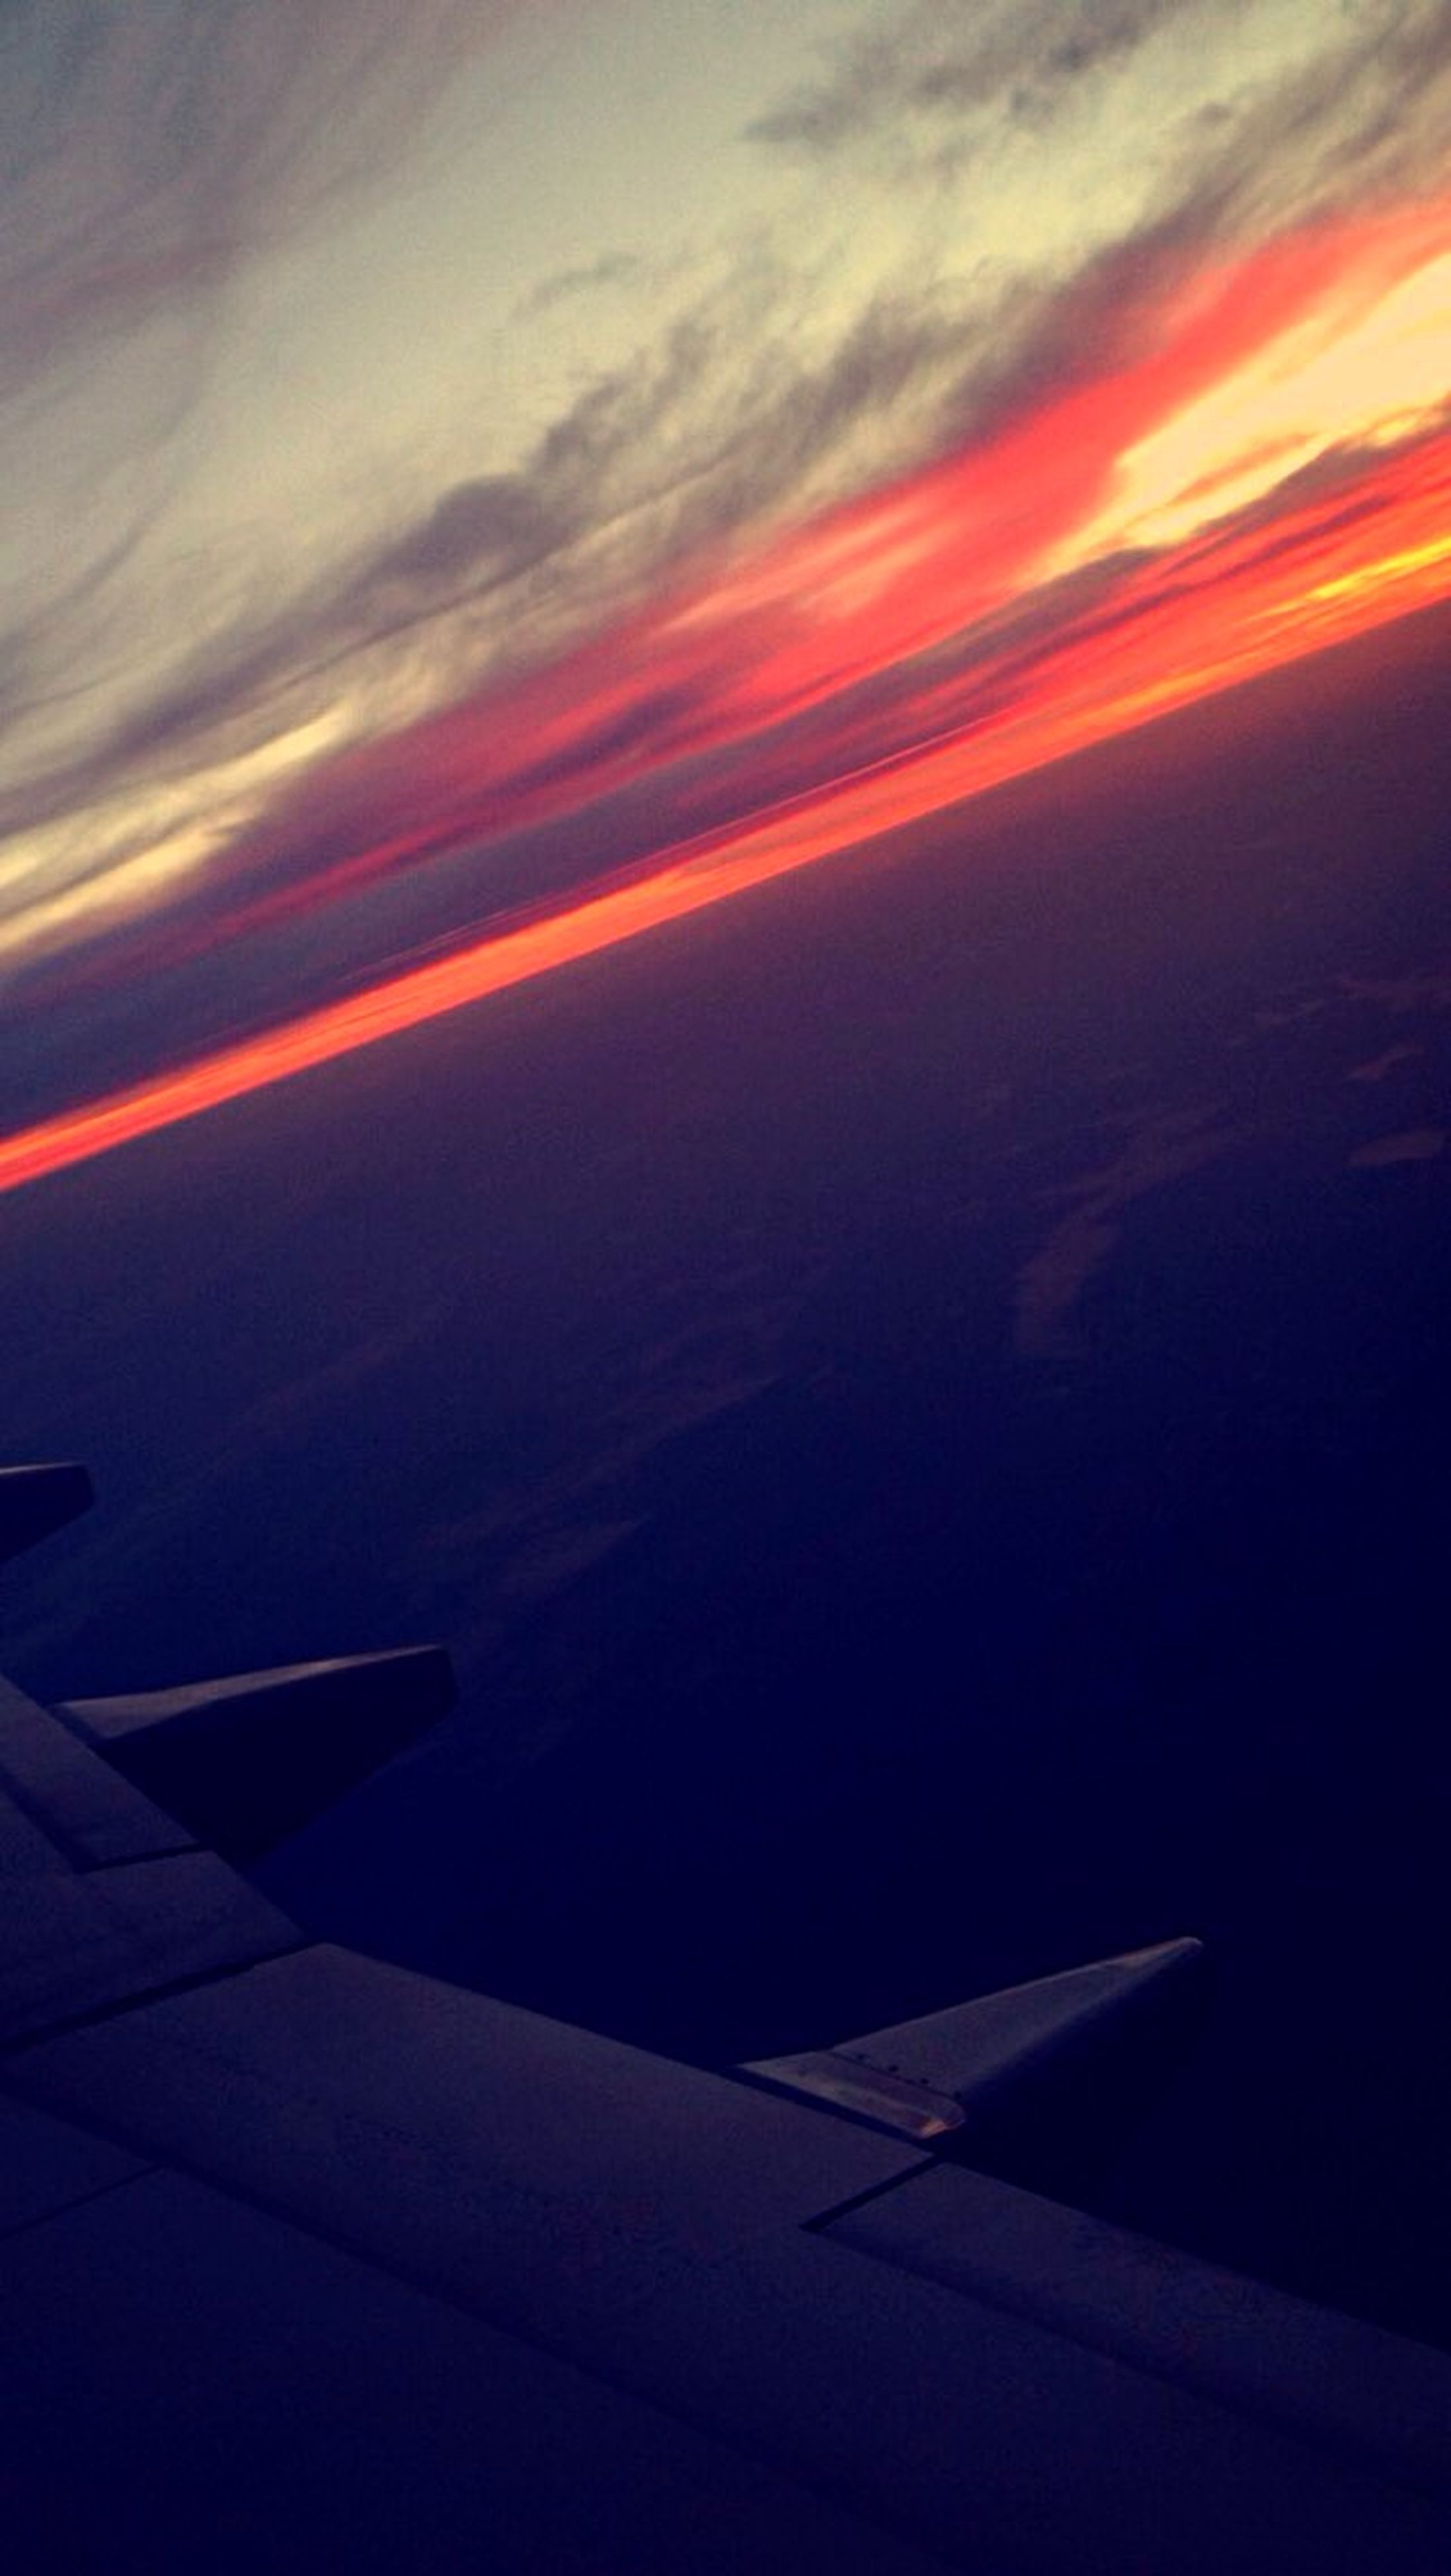 sunset, sky, orange color, airplane, cloud - sky, scenics, transportation, beauty in nature, air vehicle, dramatic sky, aerial view, nature, aircraft wing, flying, no people, cloud, outdoors, mode of transport, tranquility, idyllic